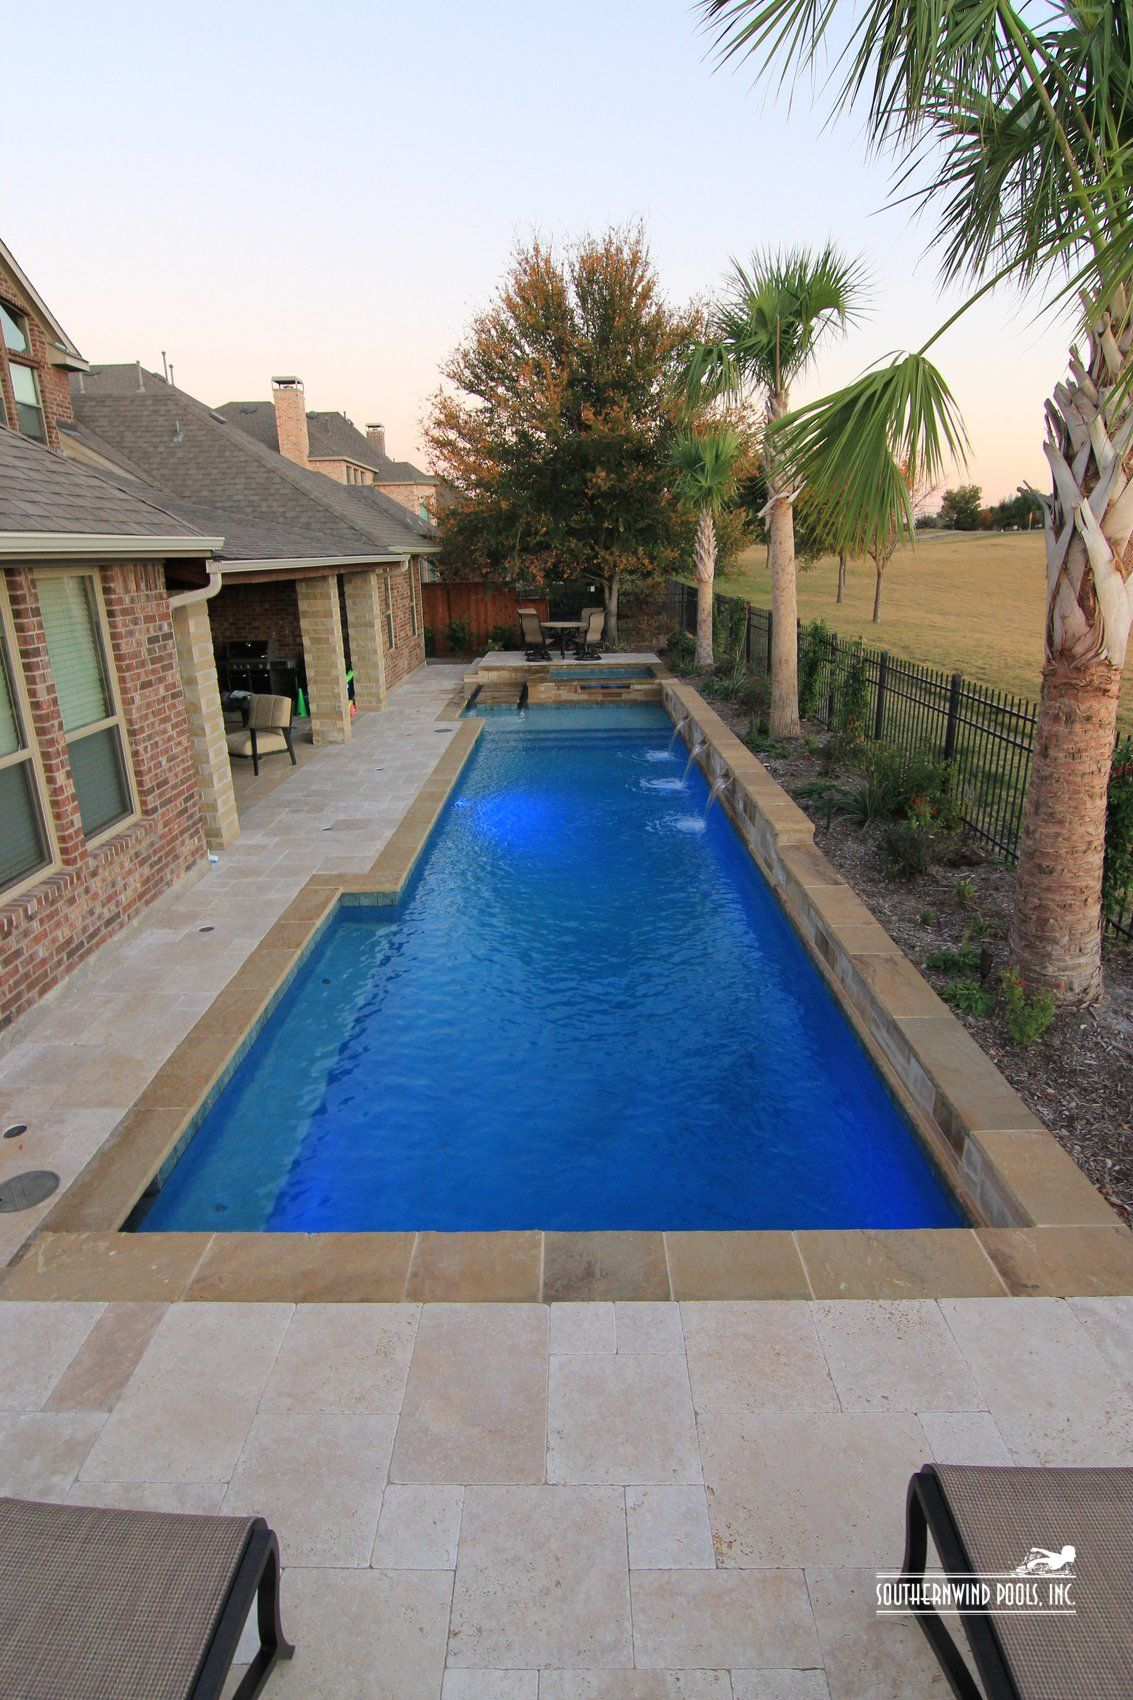 Our Pools Classic Formal Pools Gallery Small Backyard Garden Design Small Backyard Gardens Small Backyard Pools